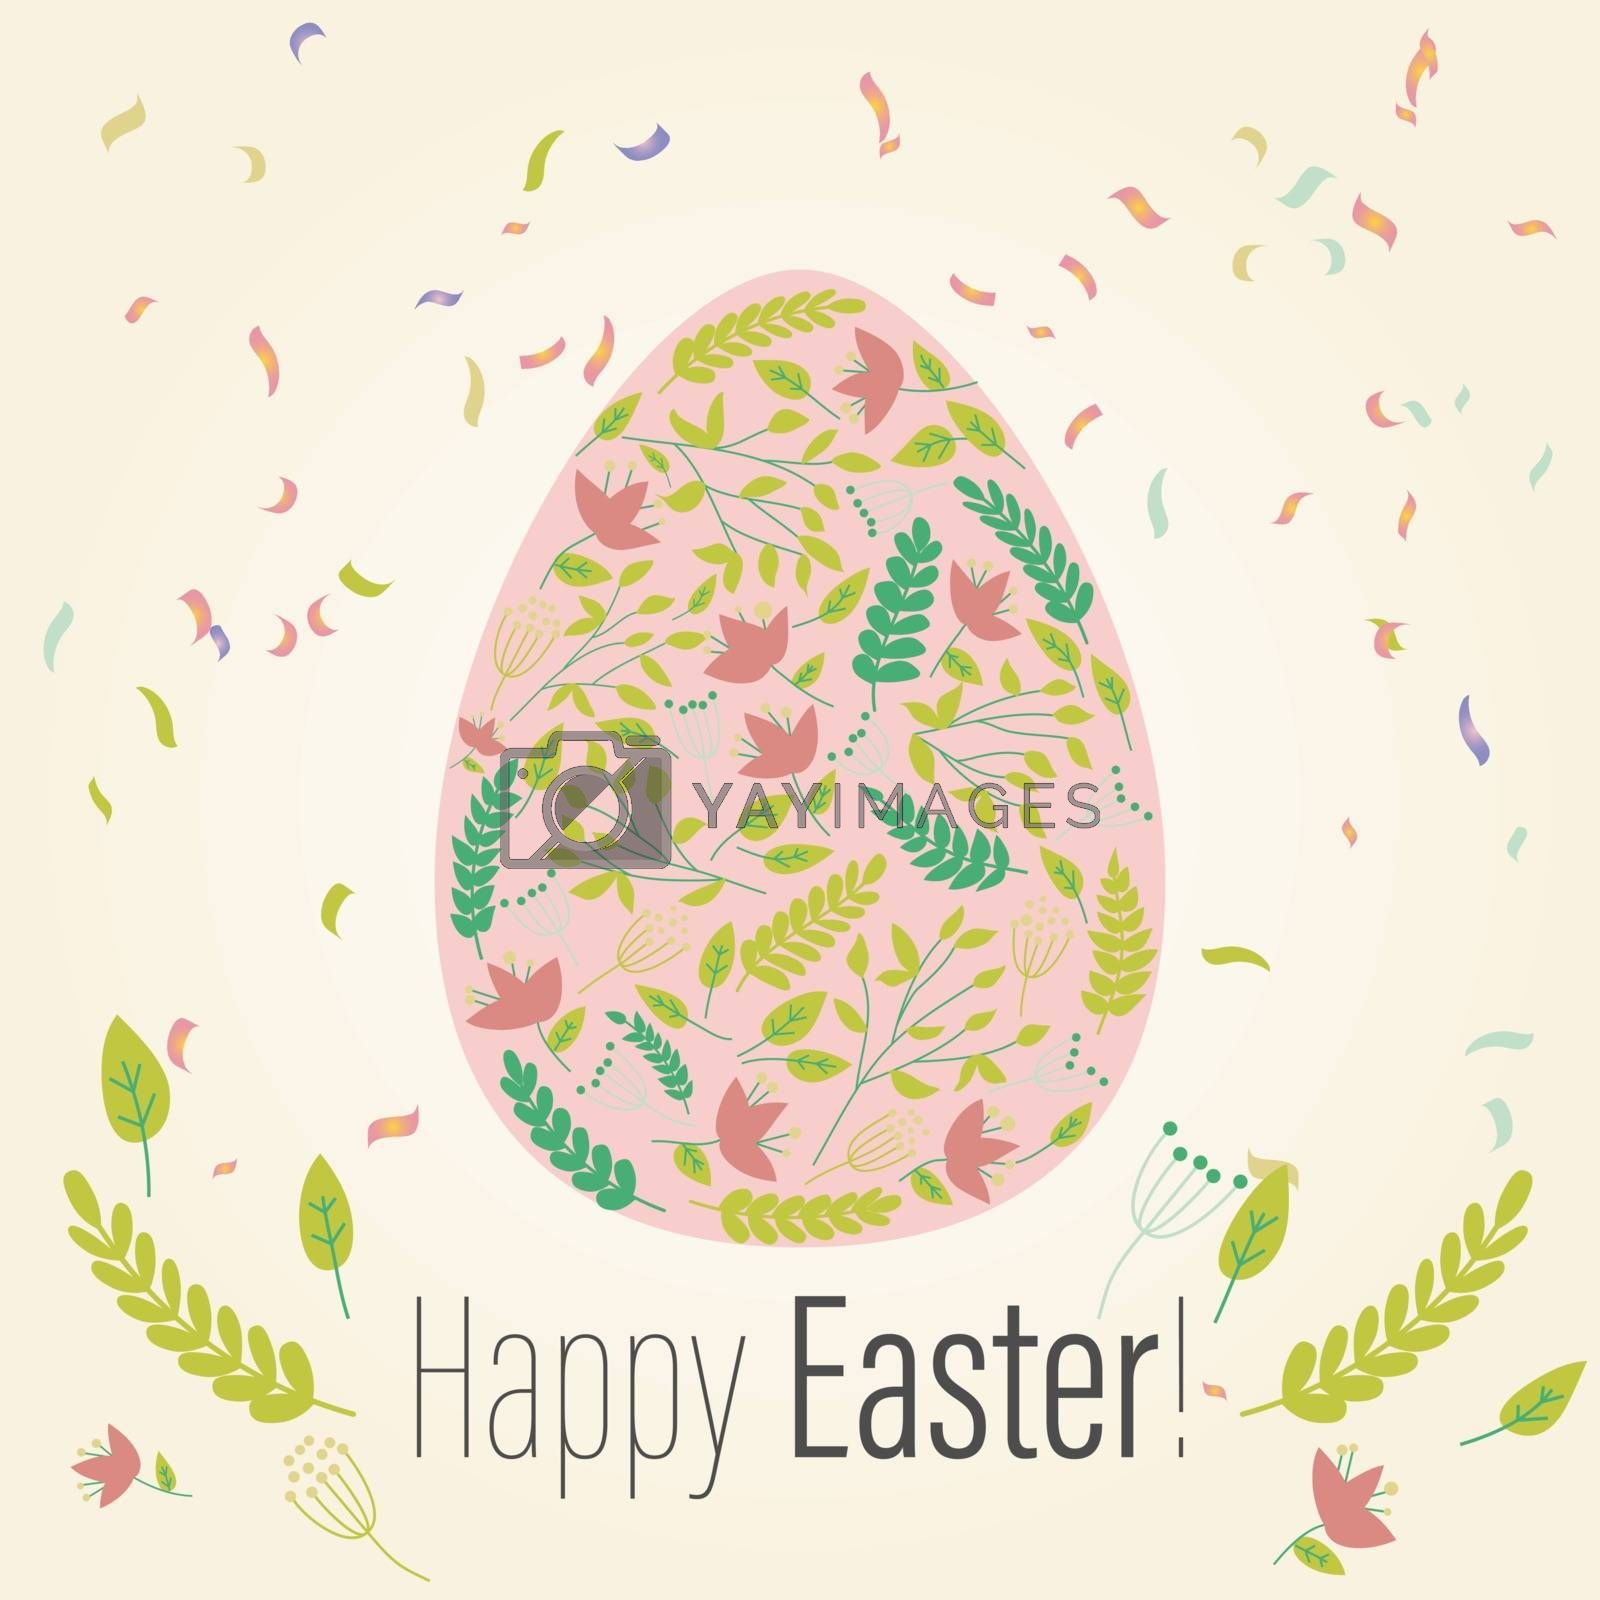 Easter greeting card in the egg shape with flowers. Religious holiday vector illustration for poster, flyer. Decorating eggs with flowers. Happy Easter